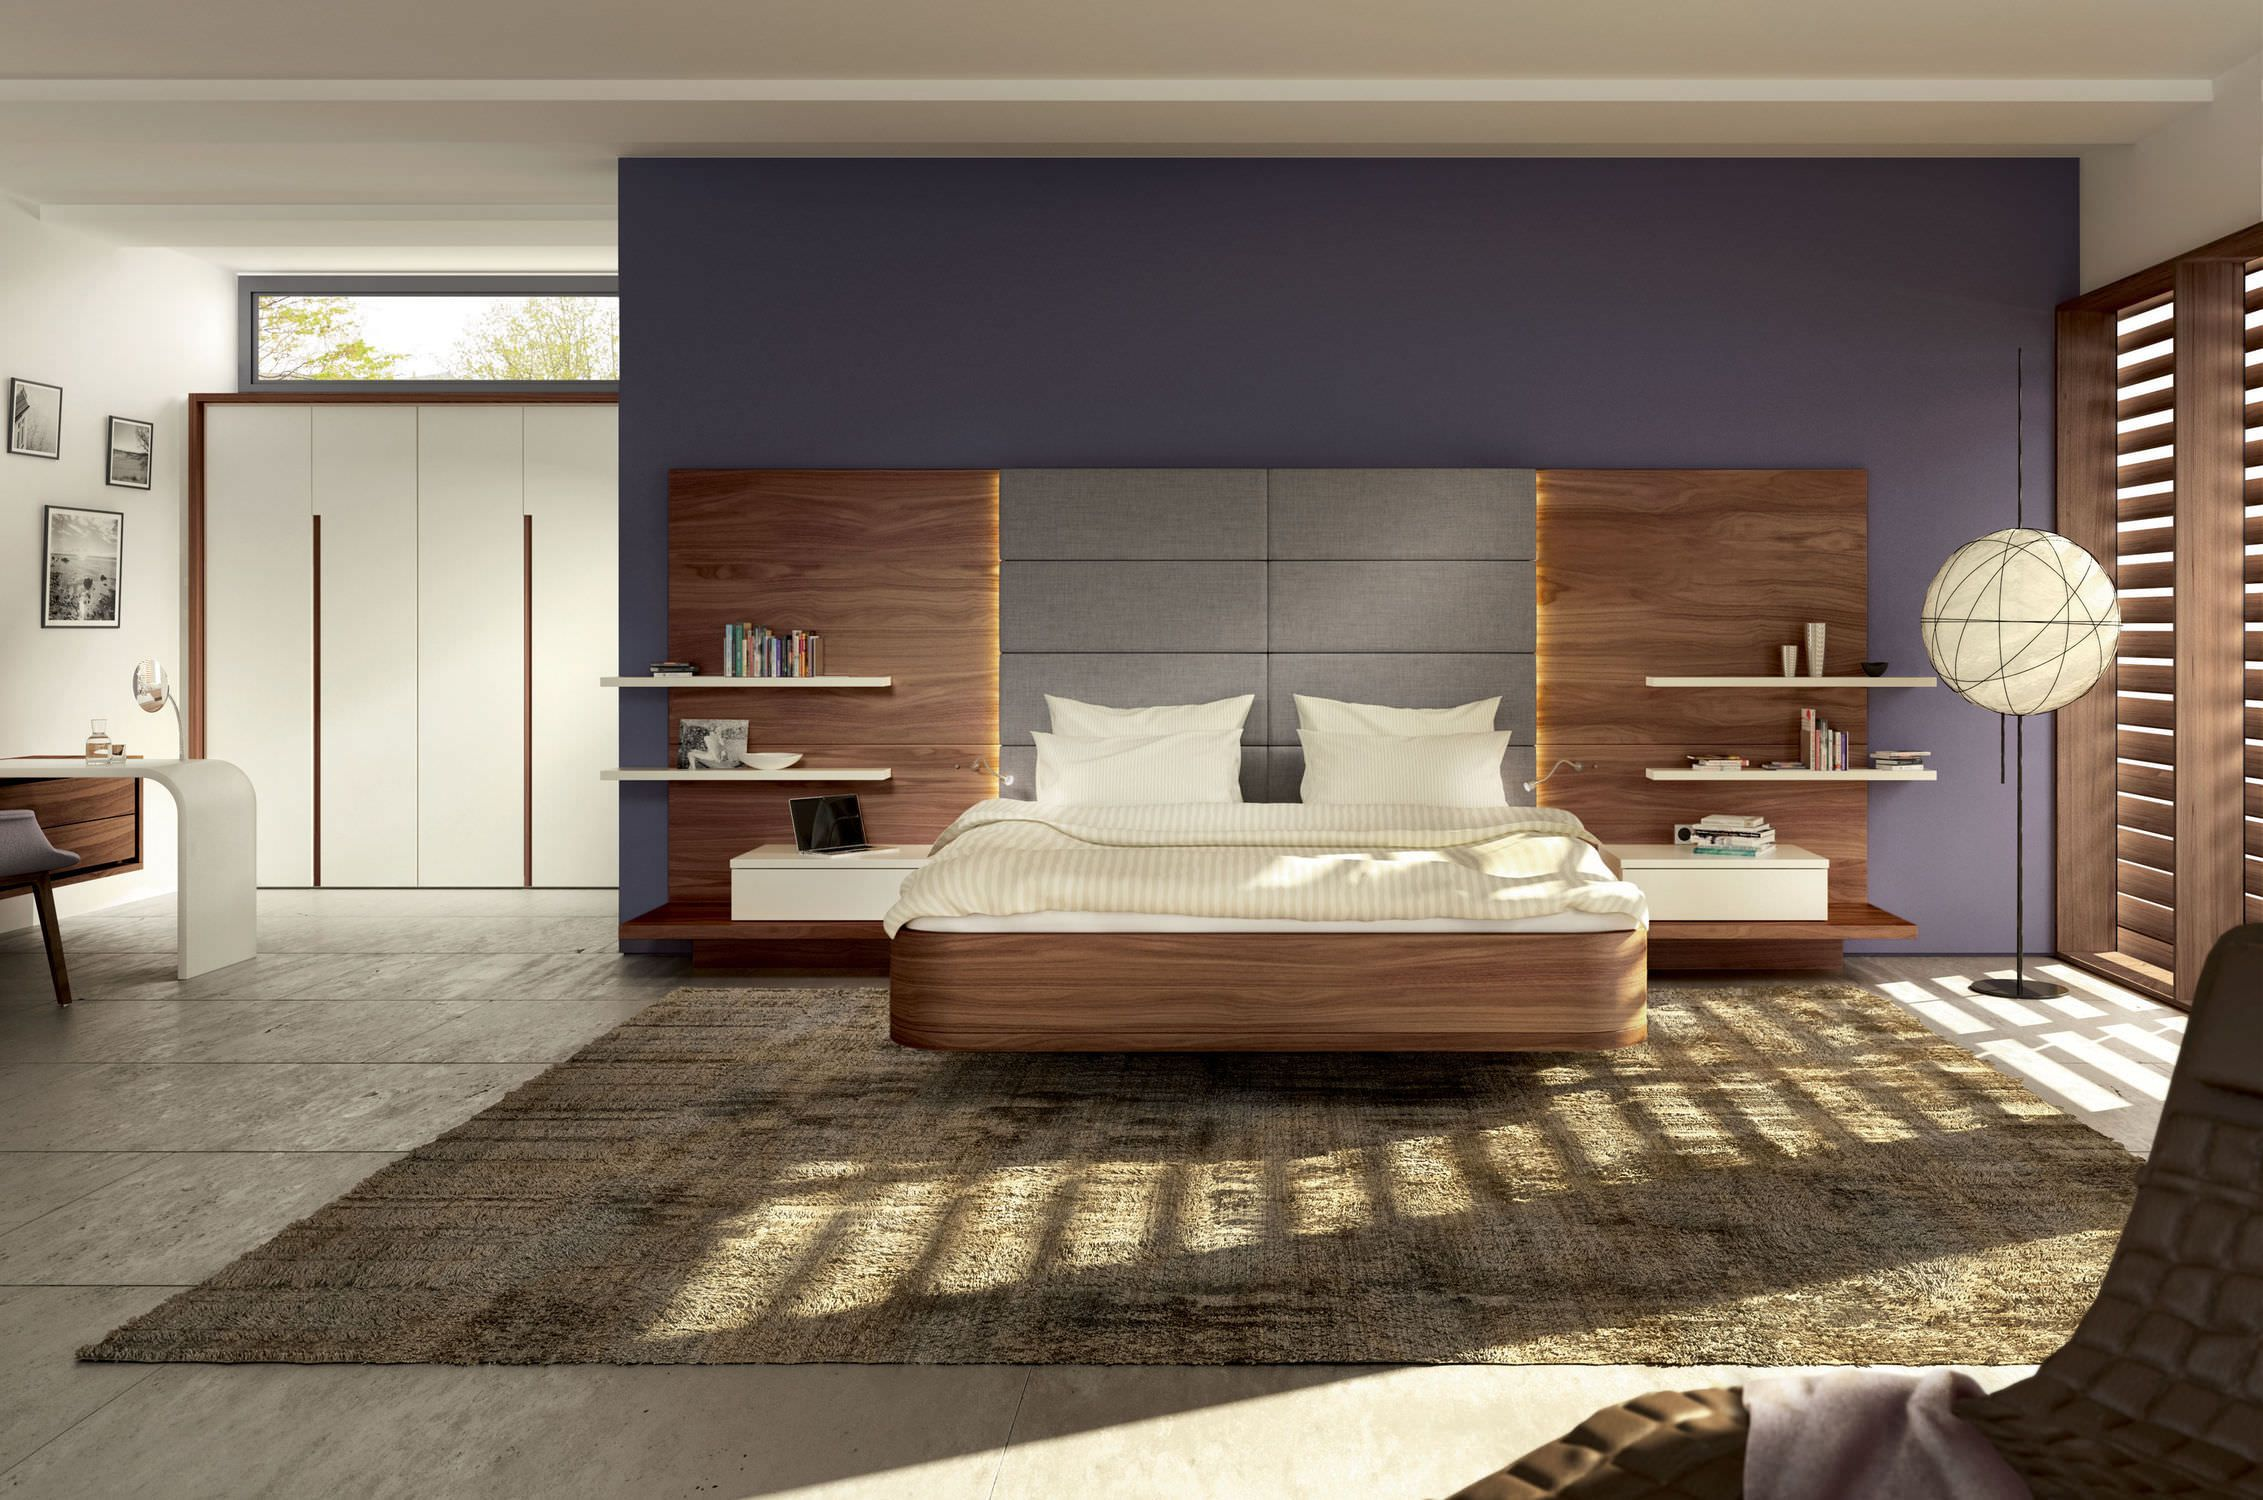 Hülsta Furniture Decoration Archiexpo Bedroom Ideas For Couples Modern Headboard With Shelves Bed Design